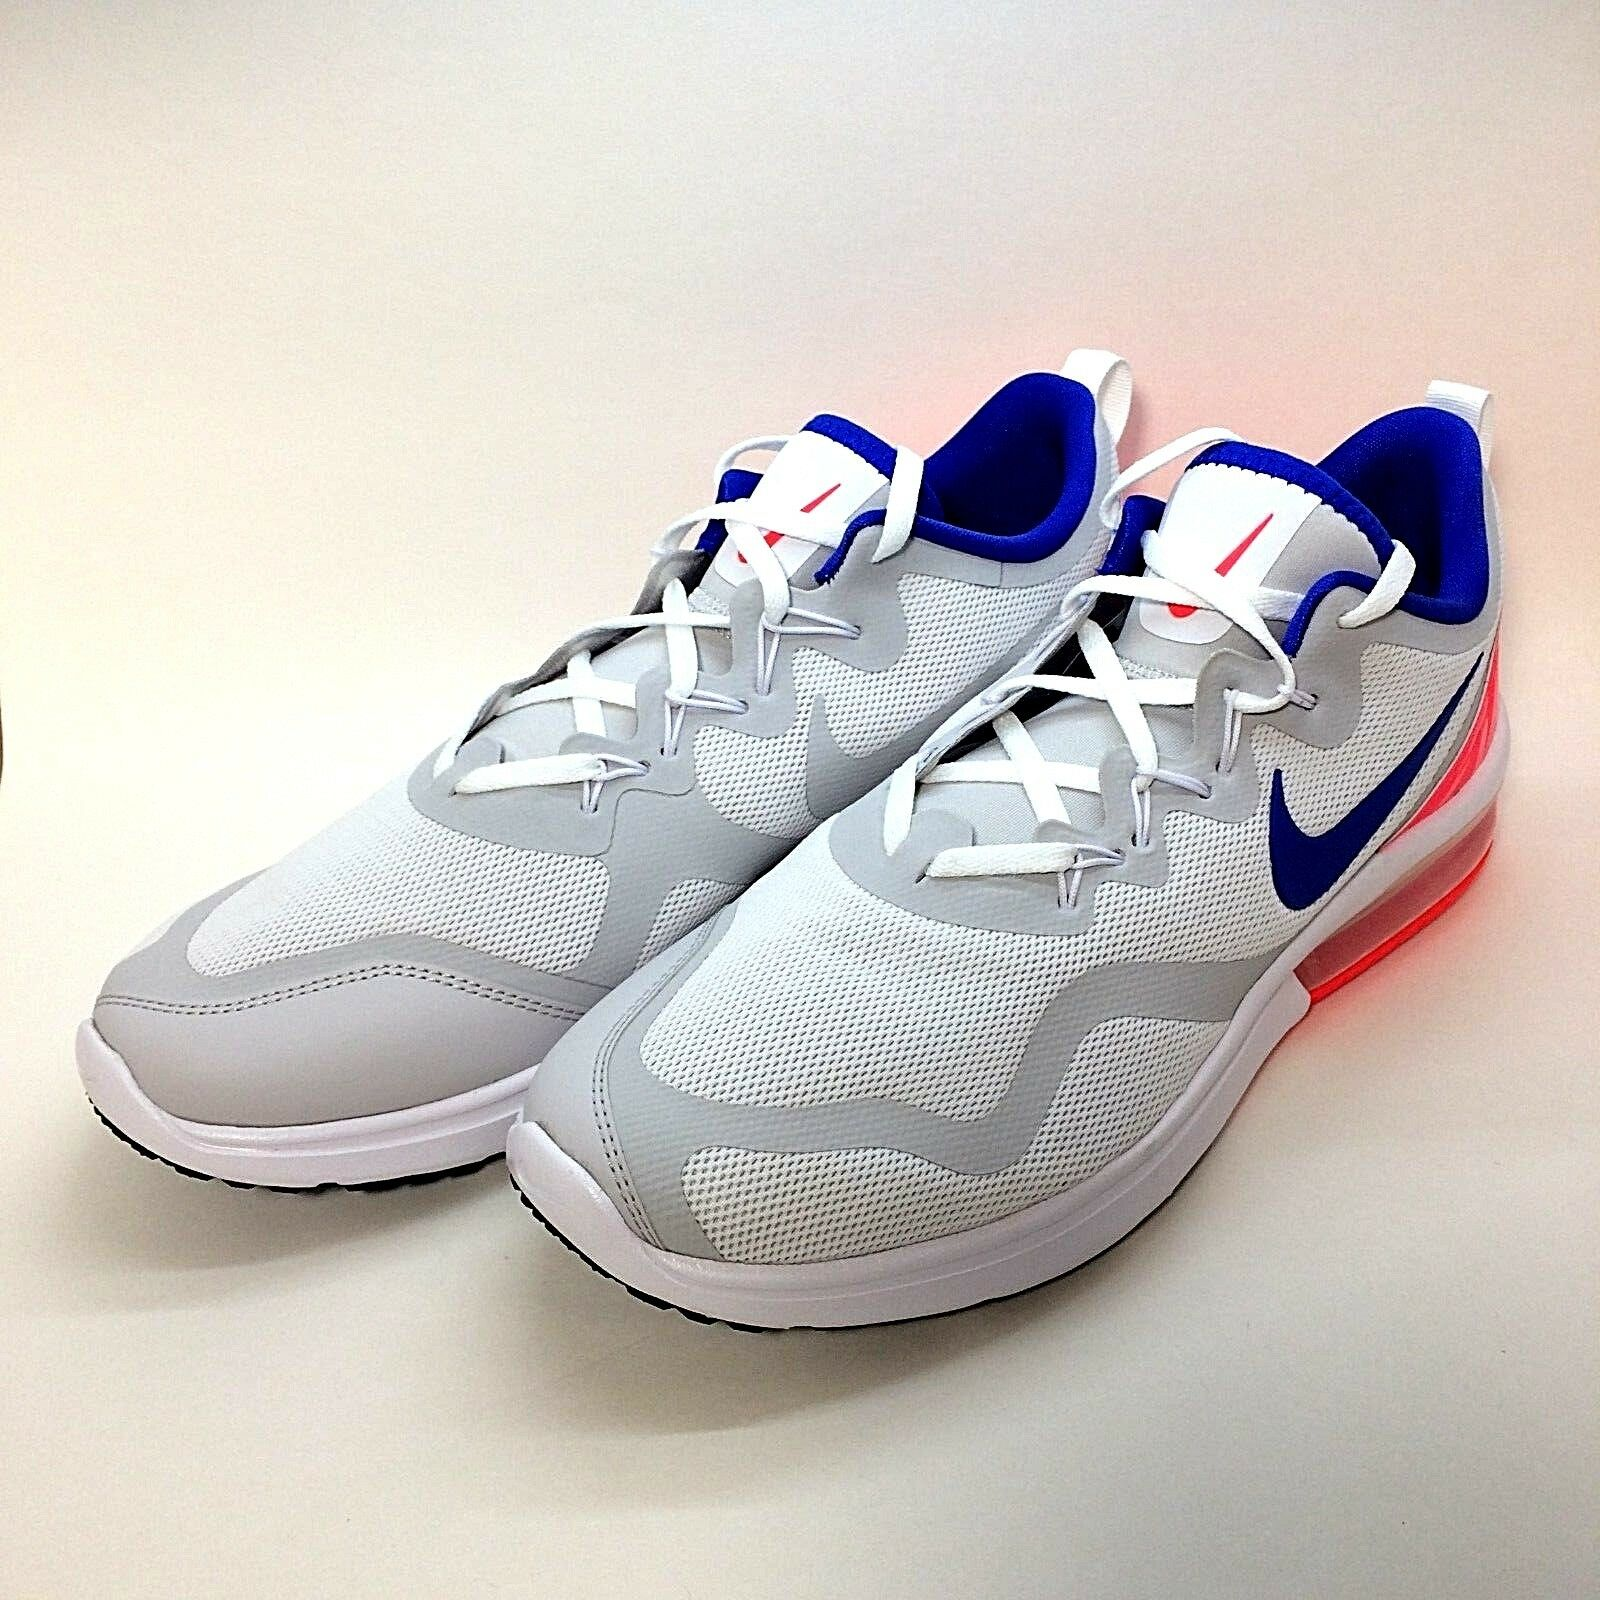 NEW Nike Air Max Fury men running shoes  AA5739-141 Size 11